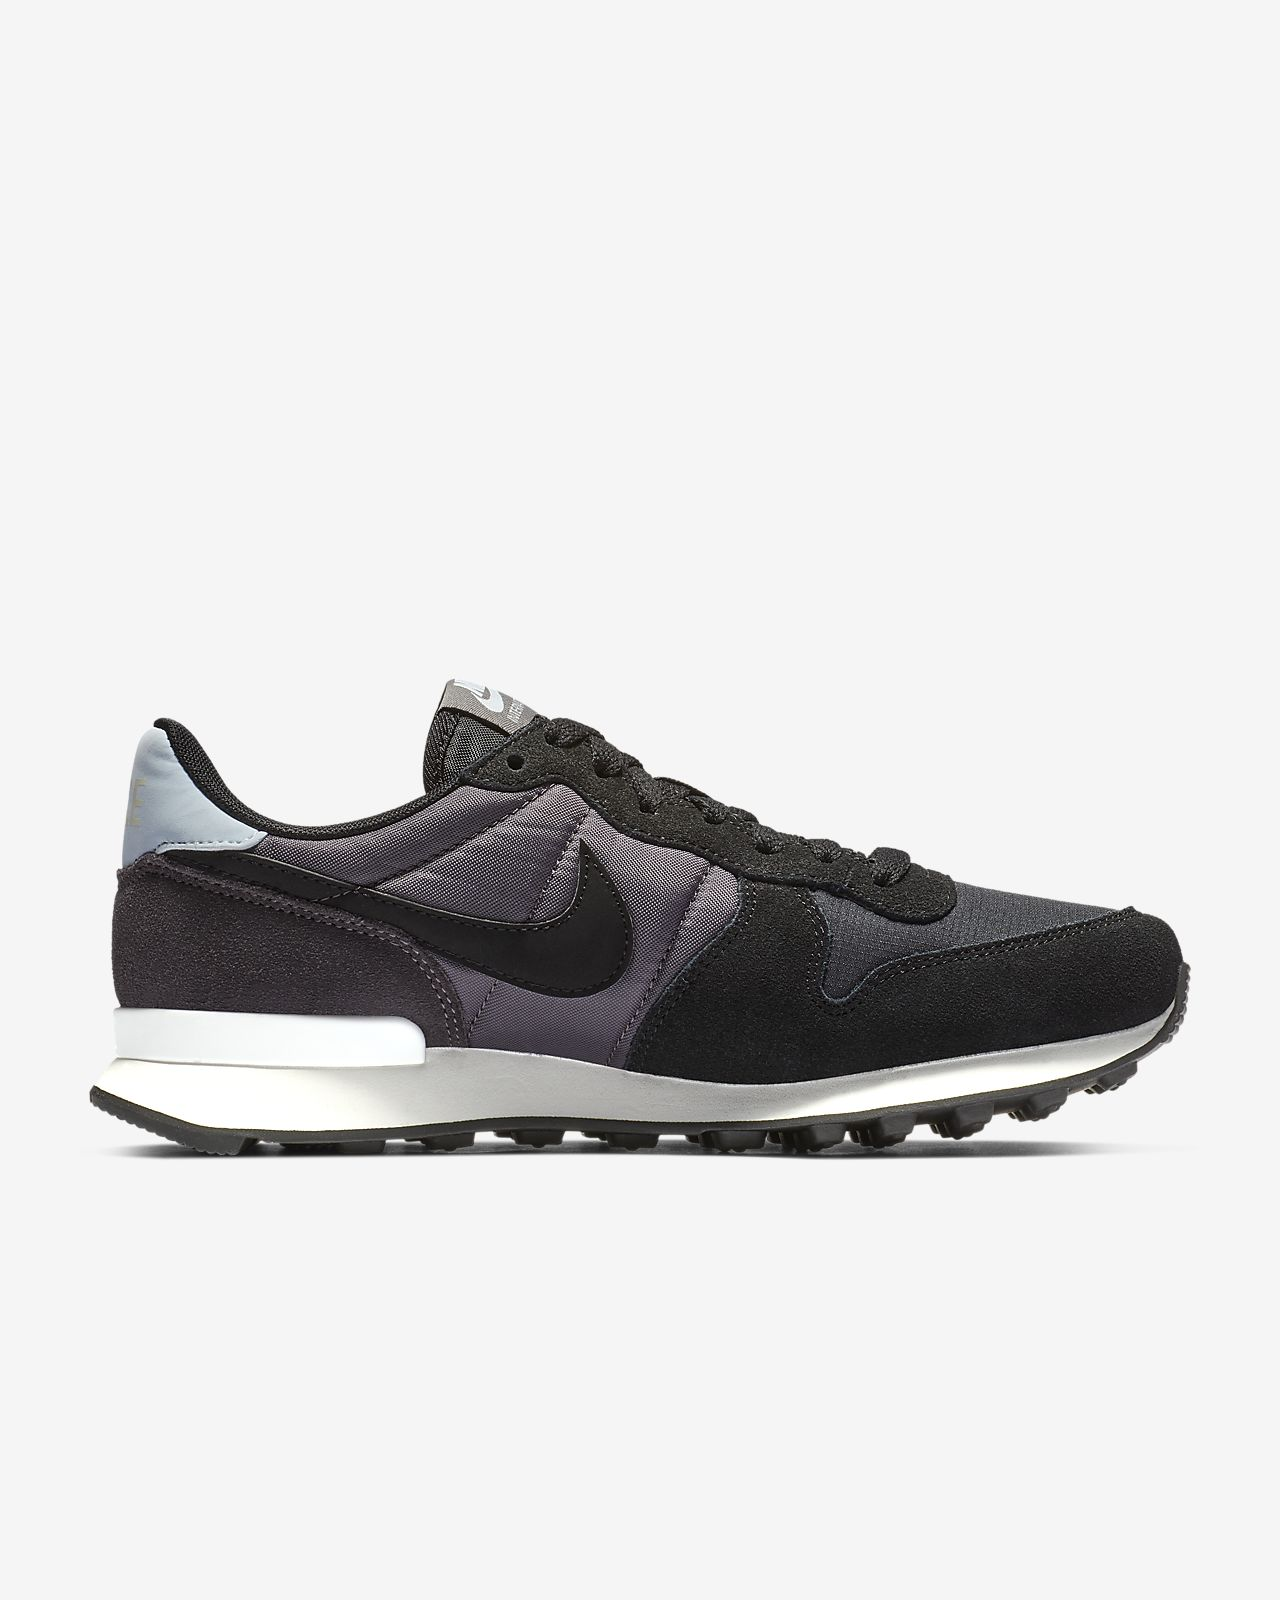 online store 2a811 39c1b Low Resolution Scarpa Nike Internationalist - Donna Scarpa Nike  Internationalist - Donna